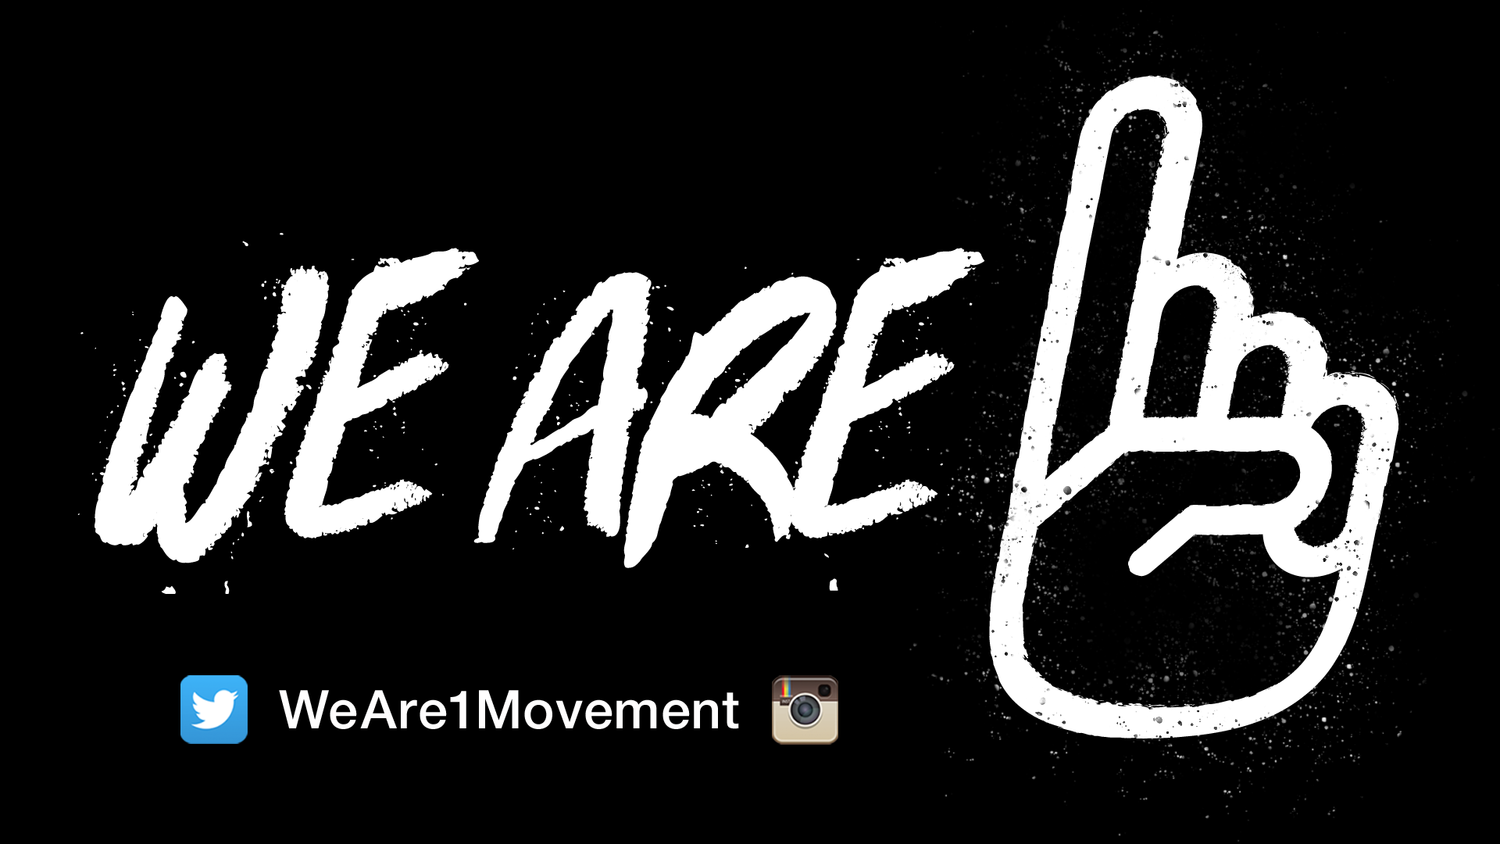 WE ARE 1 MOVEMENT